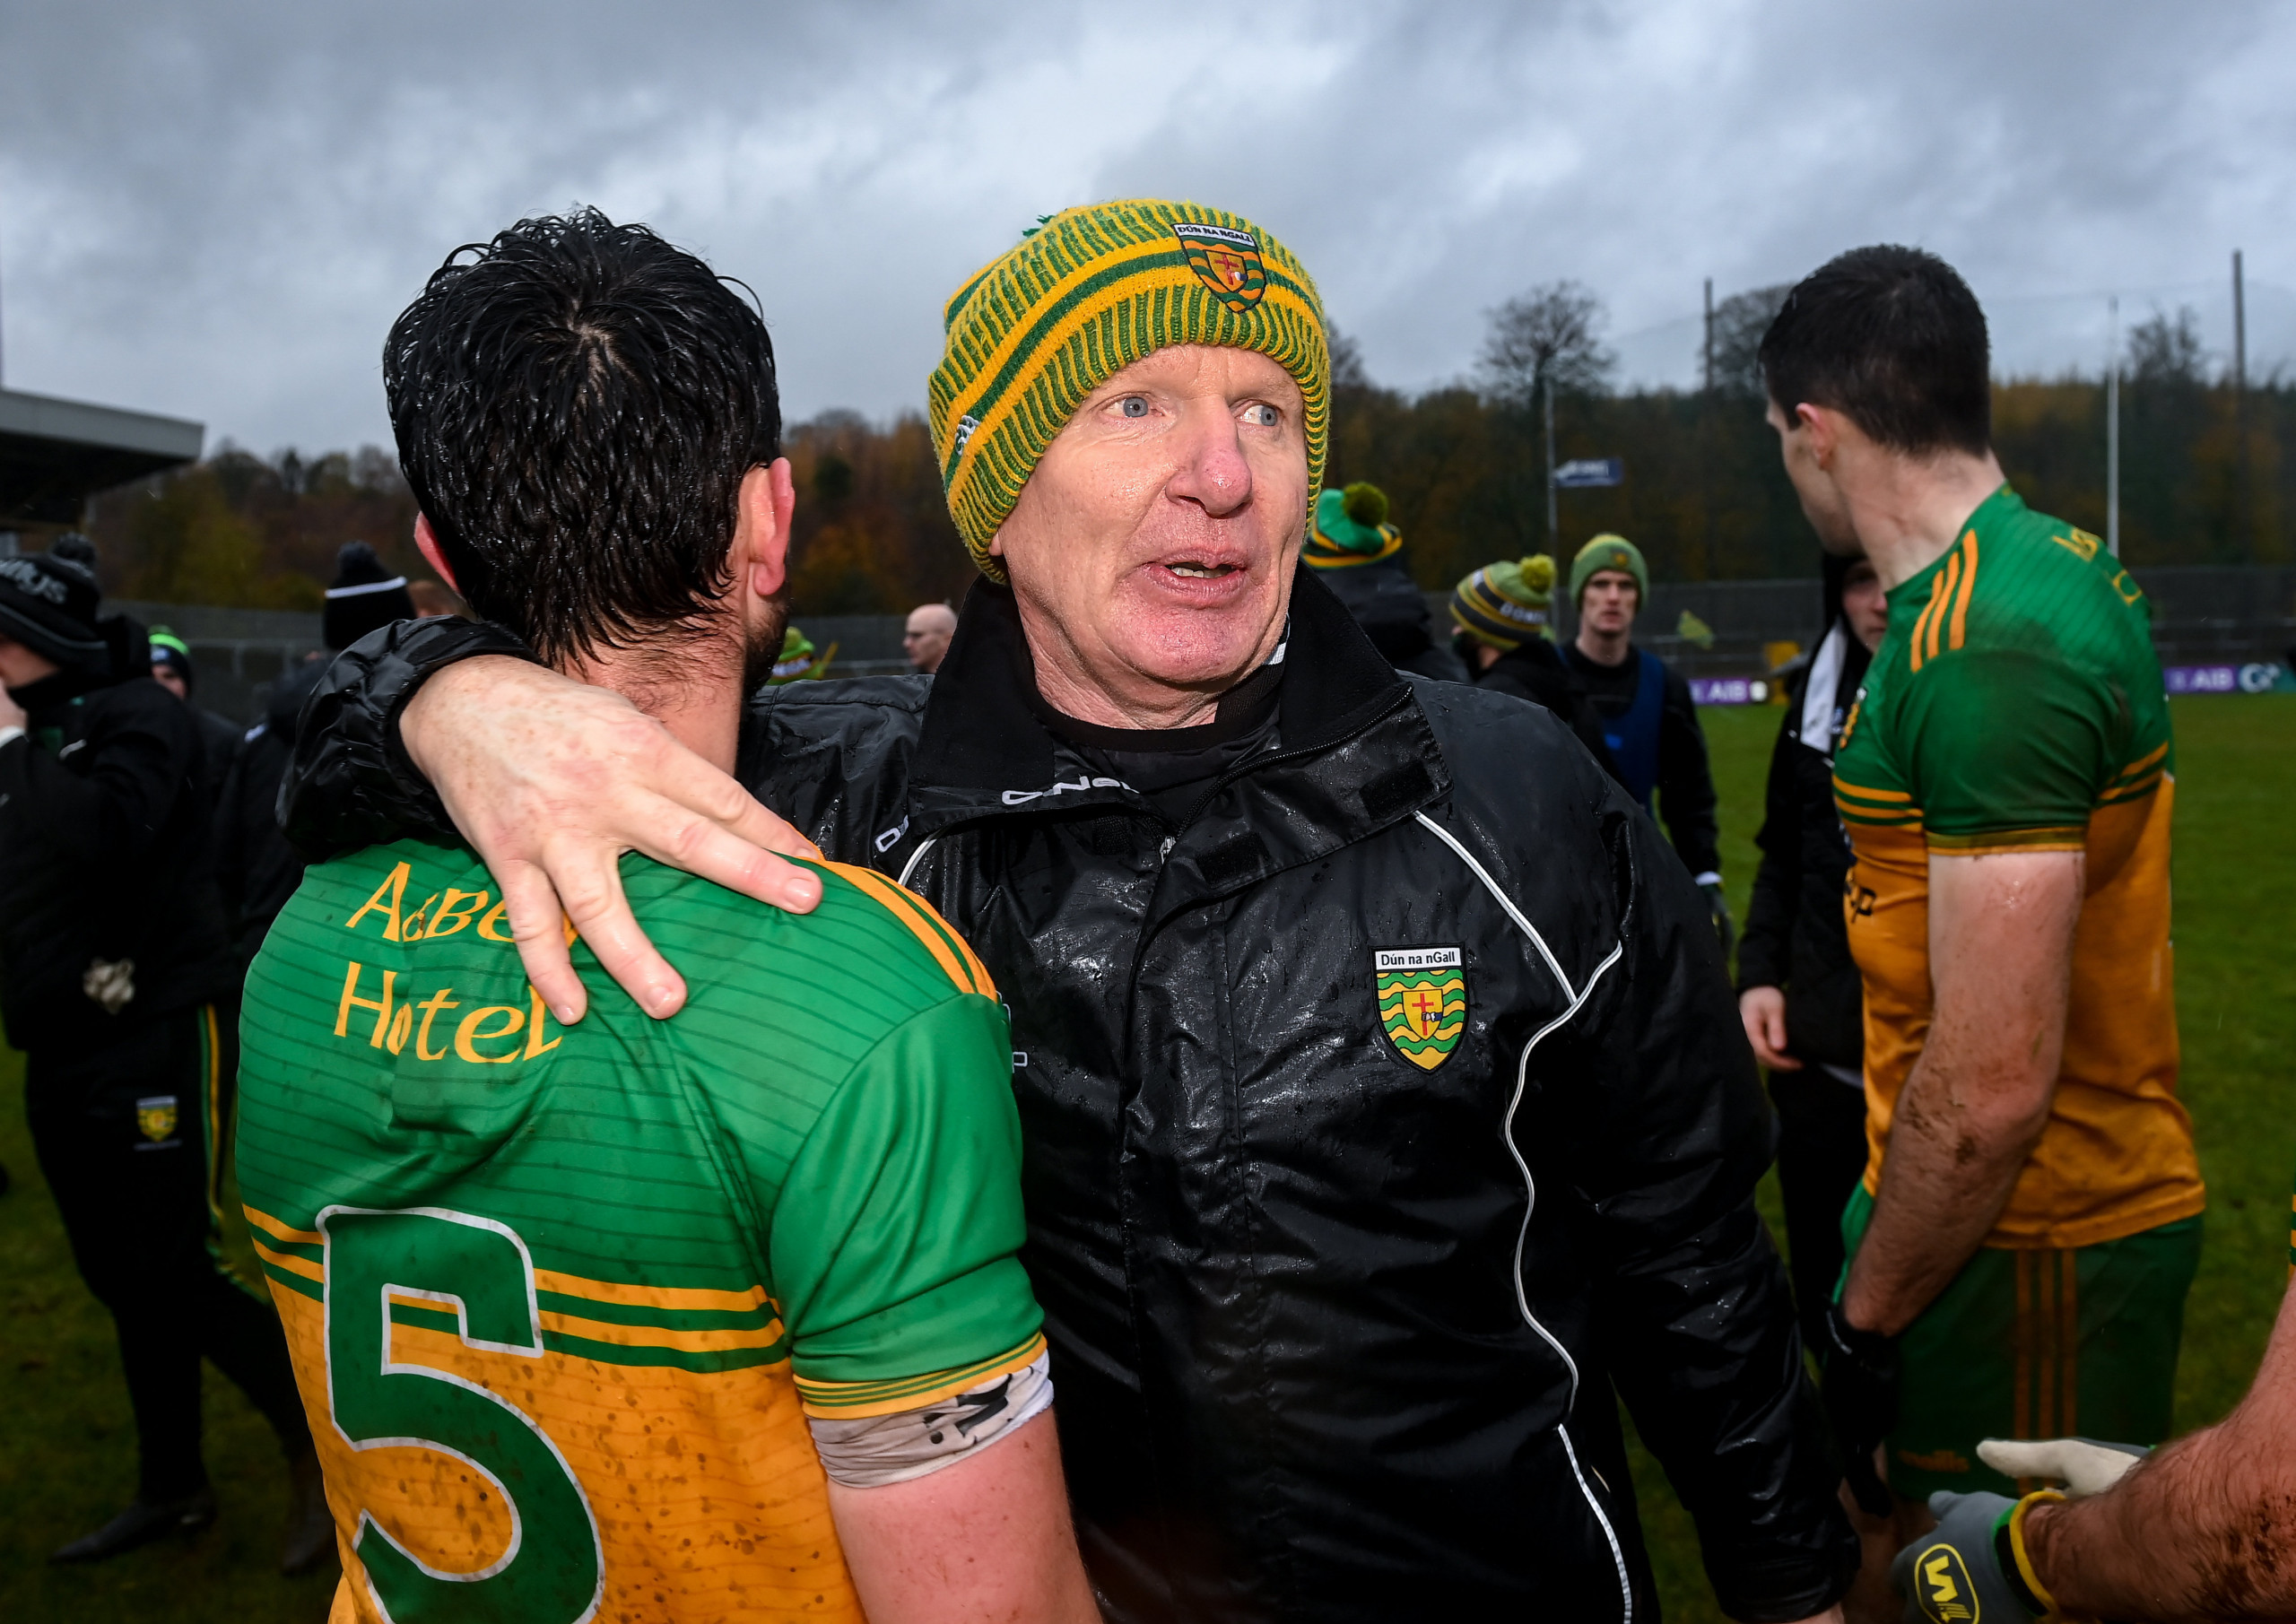 Ulster SFC Semi Final Preview: Armagh v Donegal